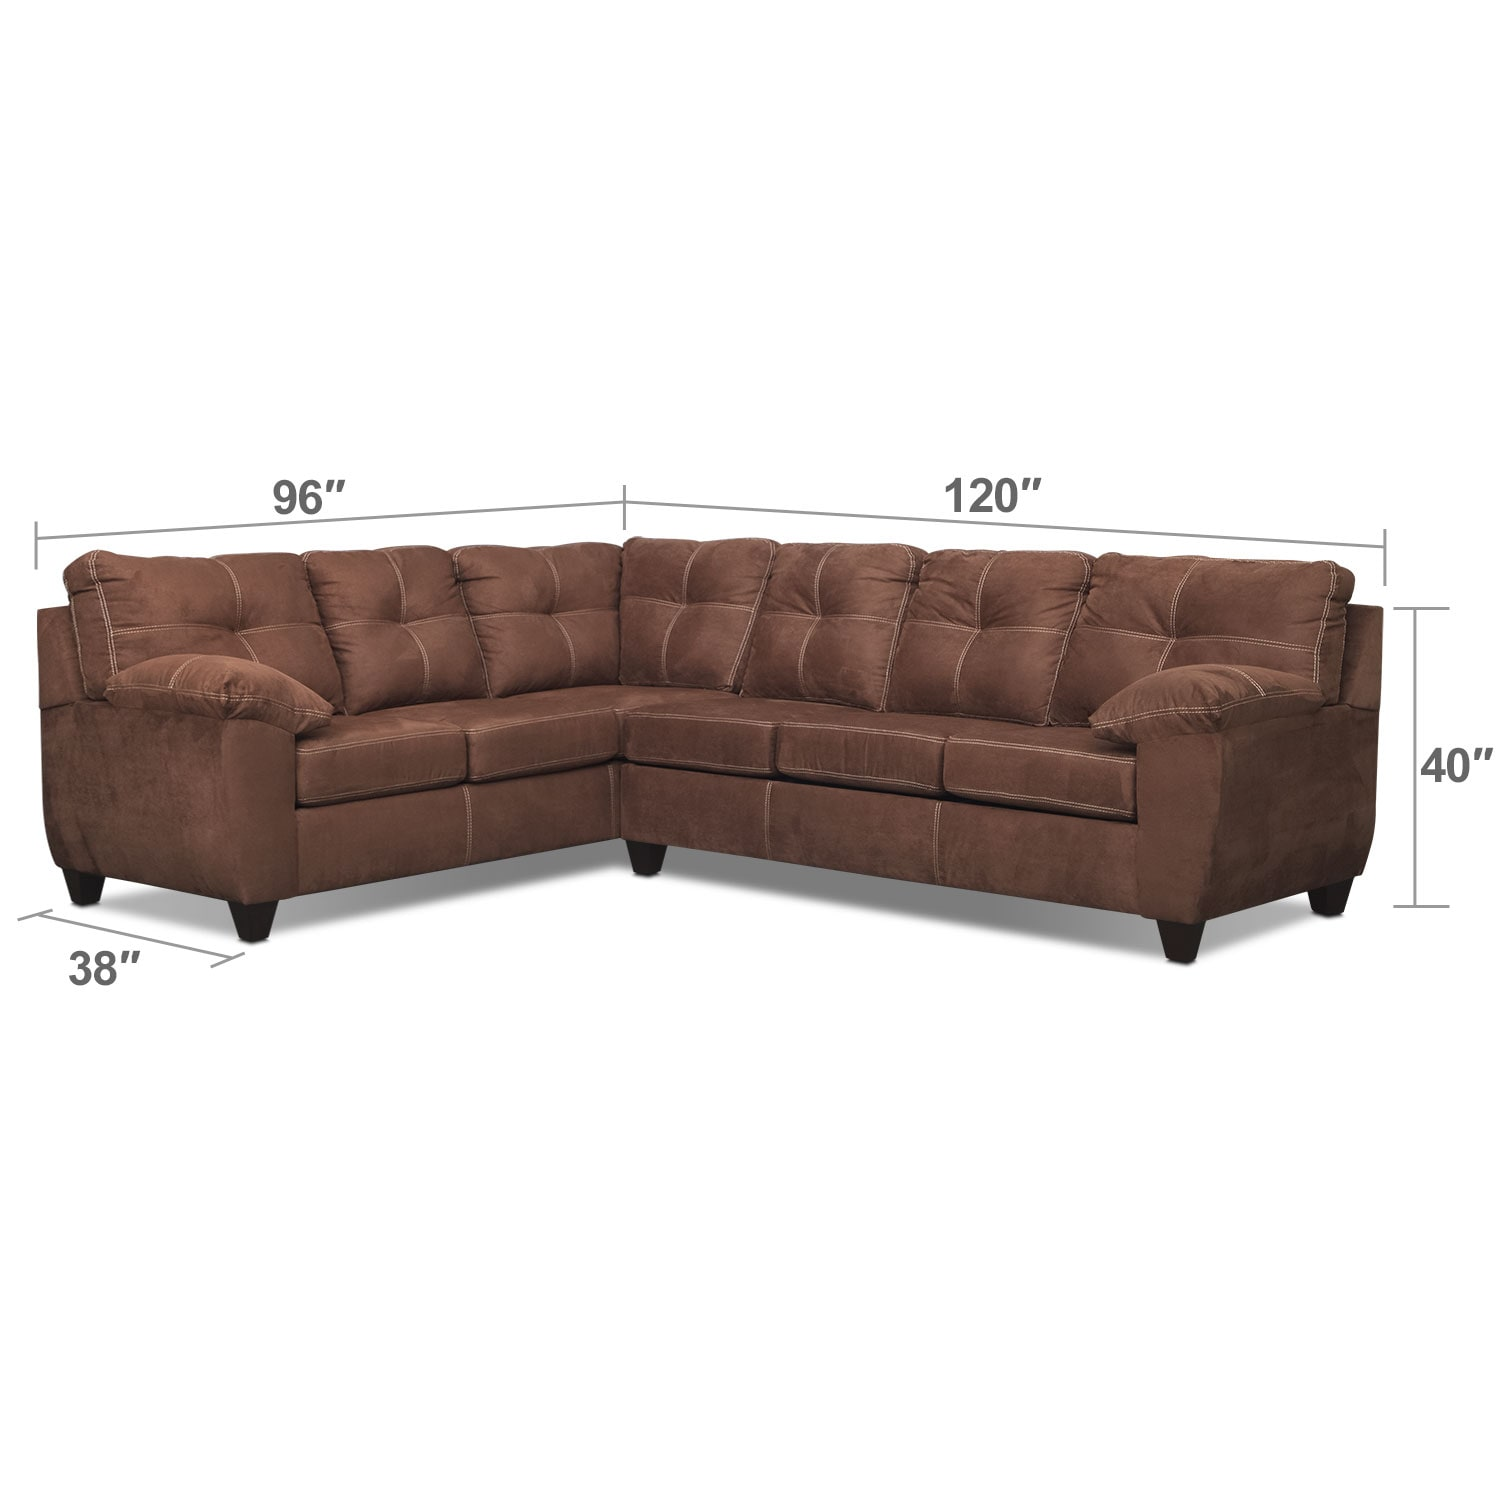 Living Room Furniture - Rialto 2-Piece Sectional with Right-Facing Innerspring Sleeper - Coffee